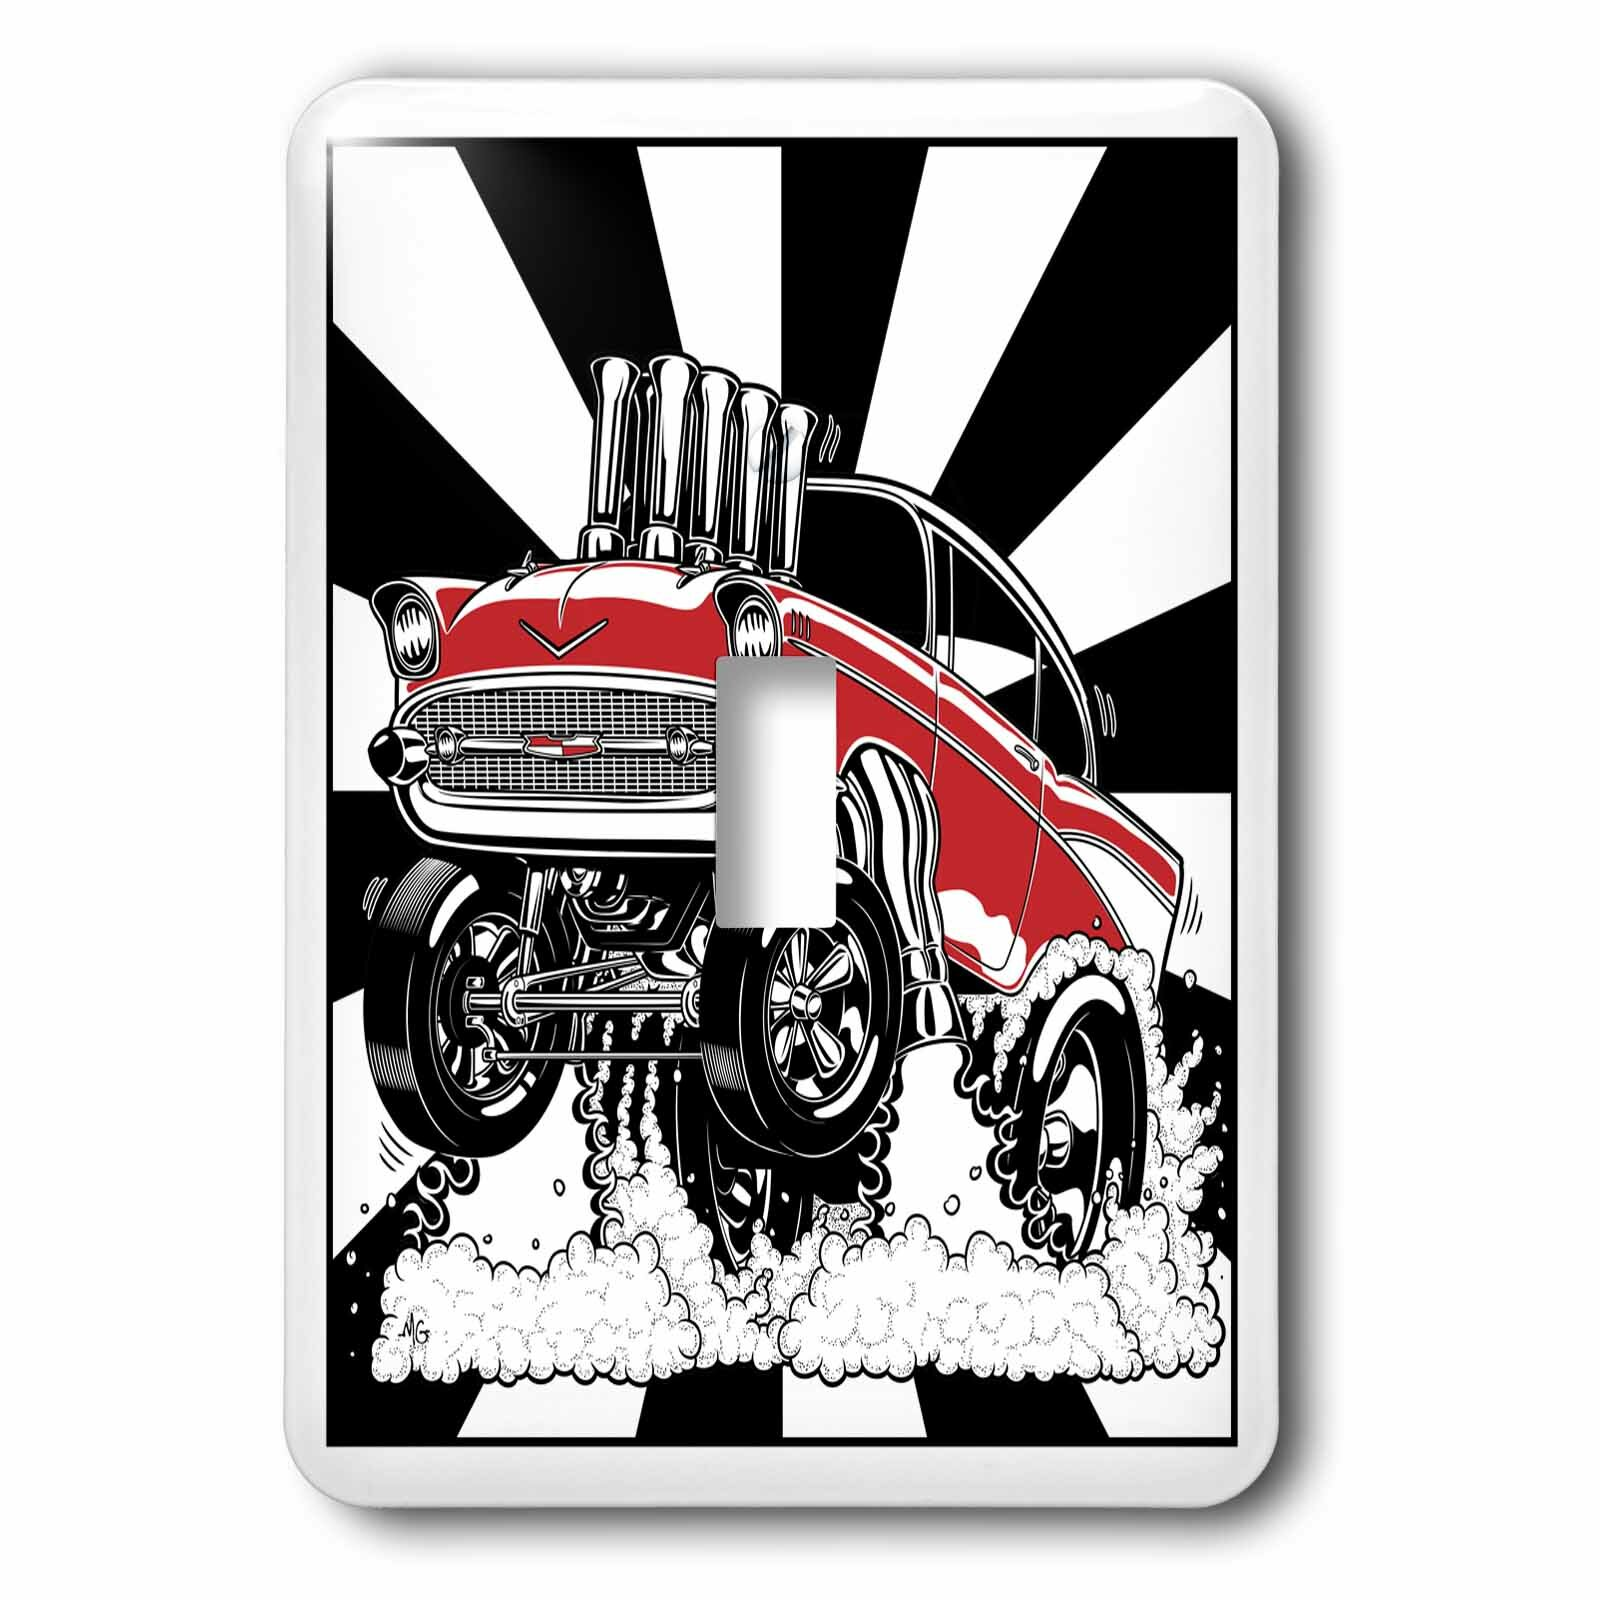 3drose A Killer 57 Hot Rod Drag Racing For S With A Fuel Injected Motor 1 Gang Toggle Light Switch Wall Plate Wayfair